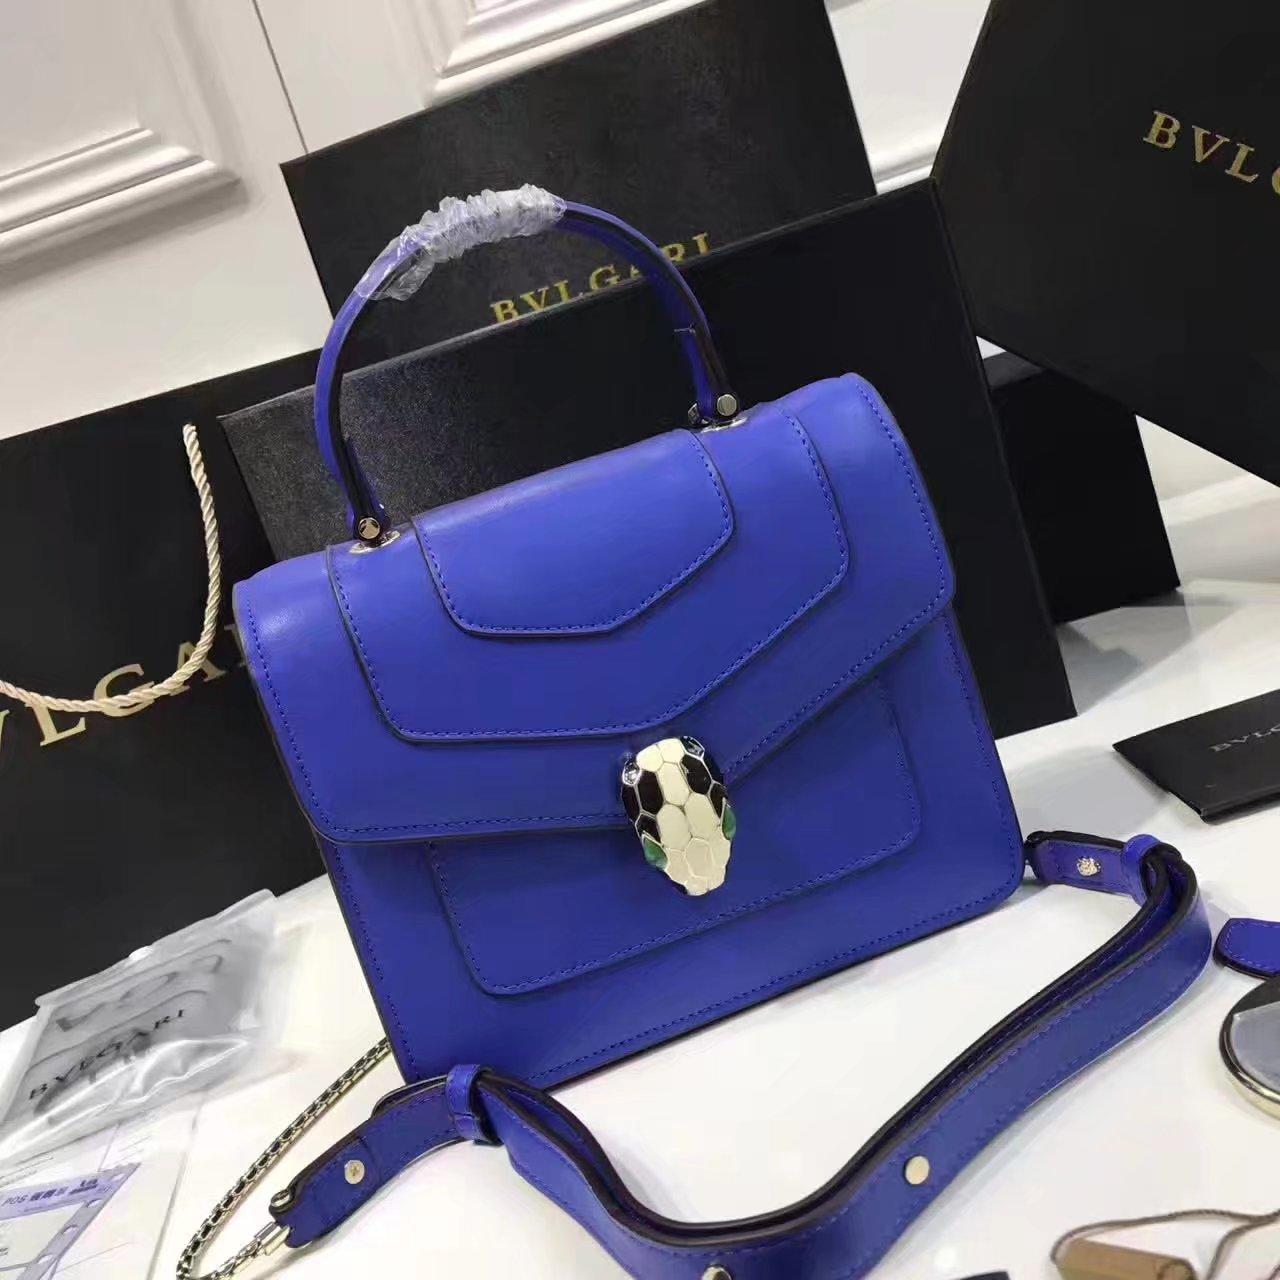 Bulgari Serpenti Forever Flap Cover Bag Blue With Malachite Eyes